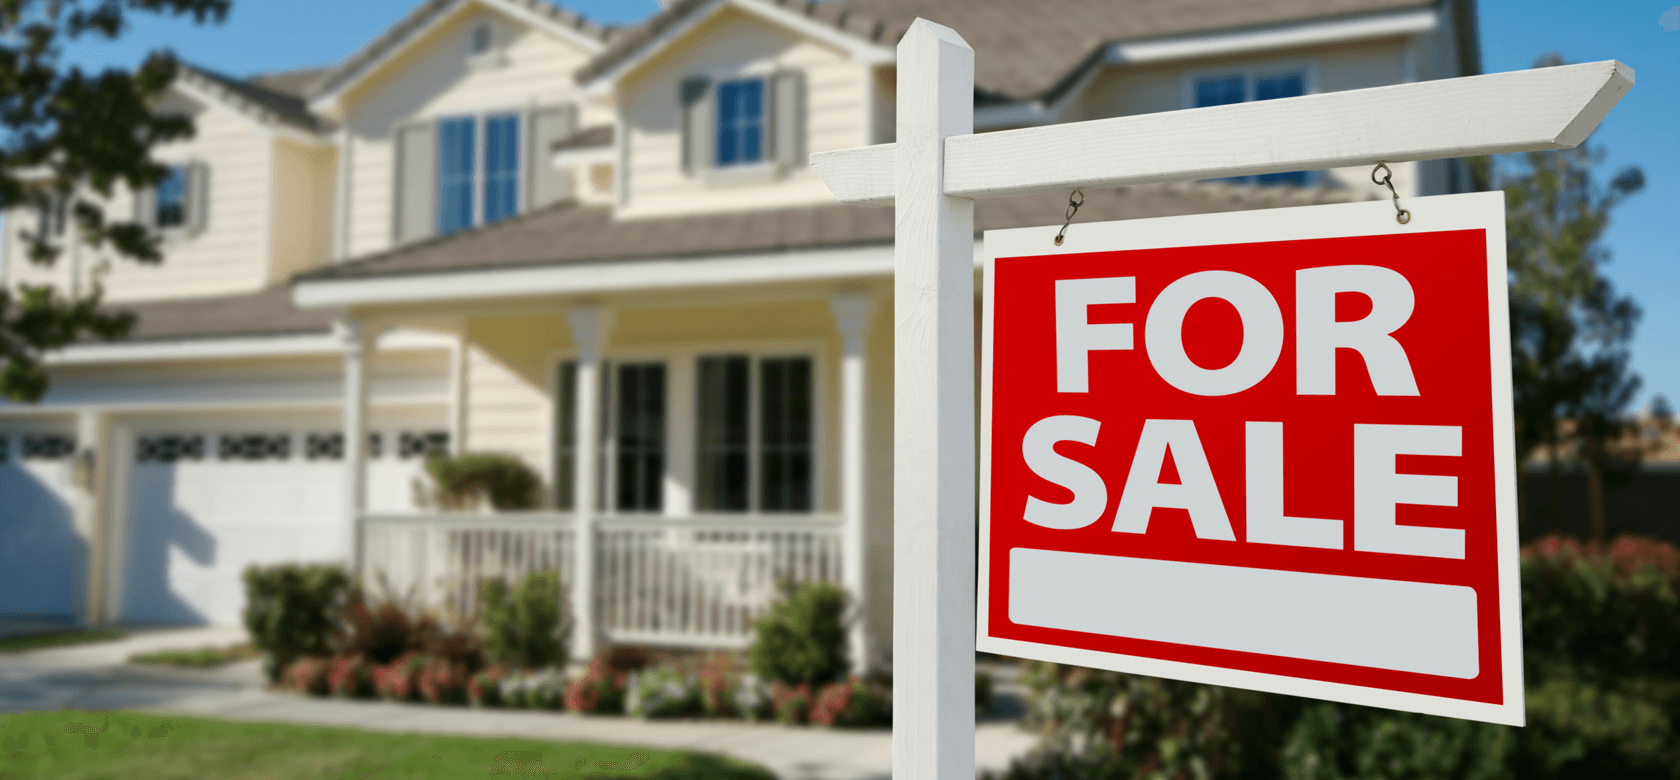 Expert Tips to Sell Your Home Featured Image